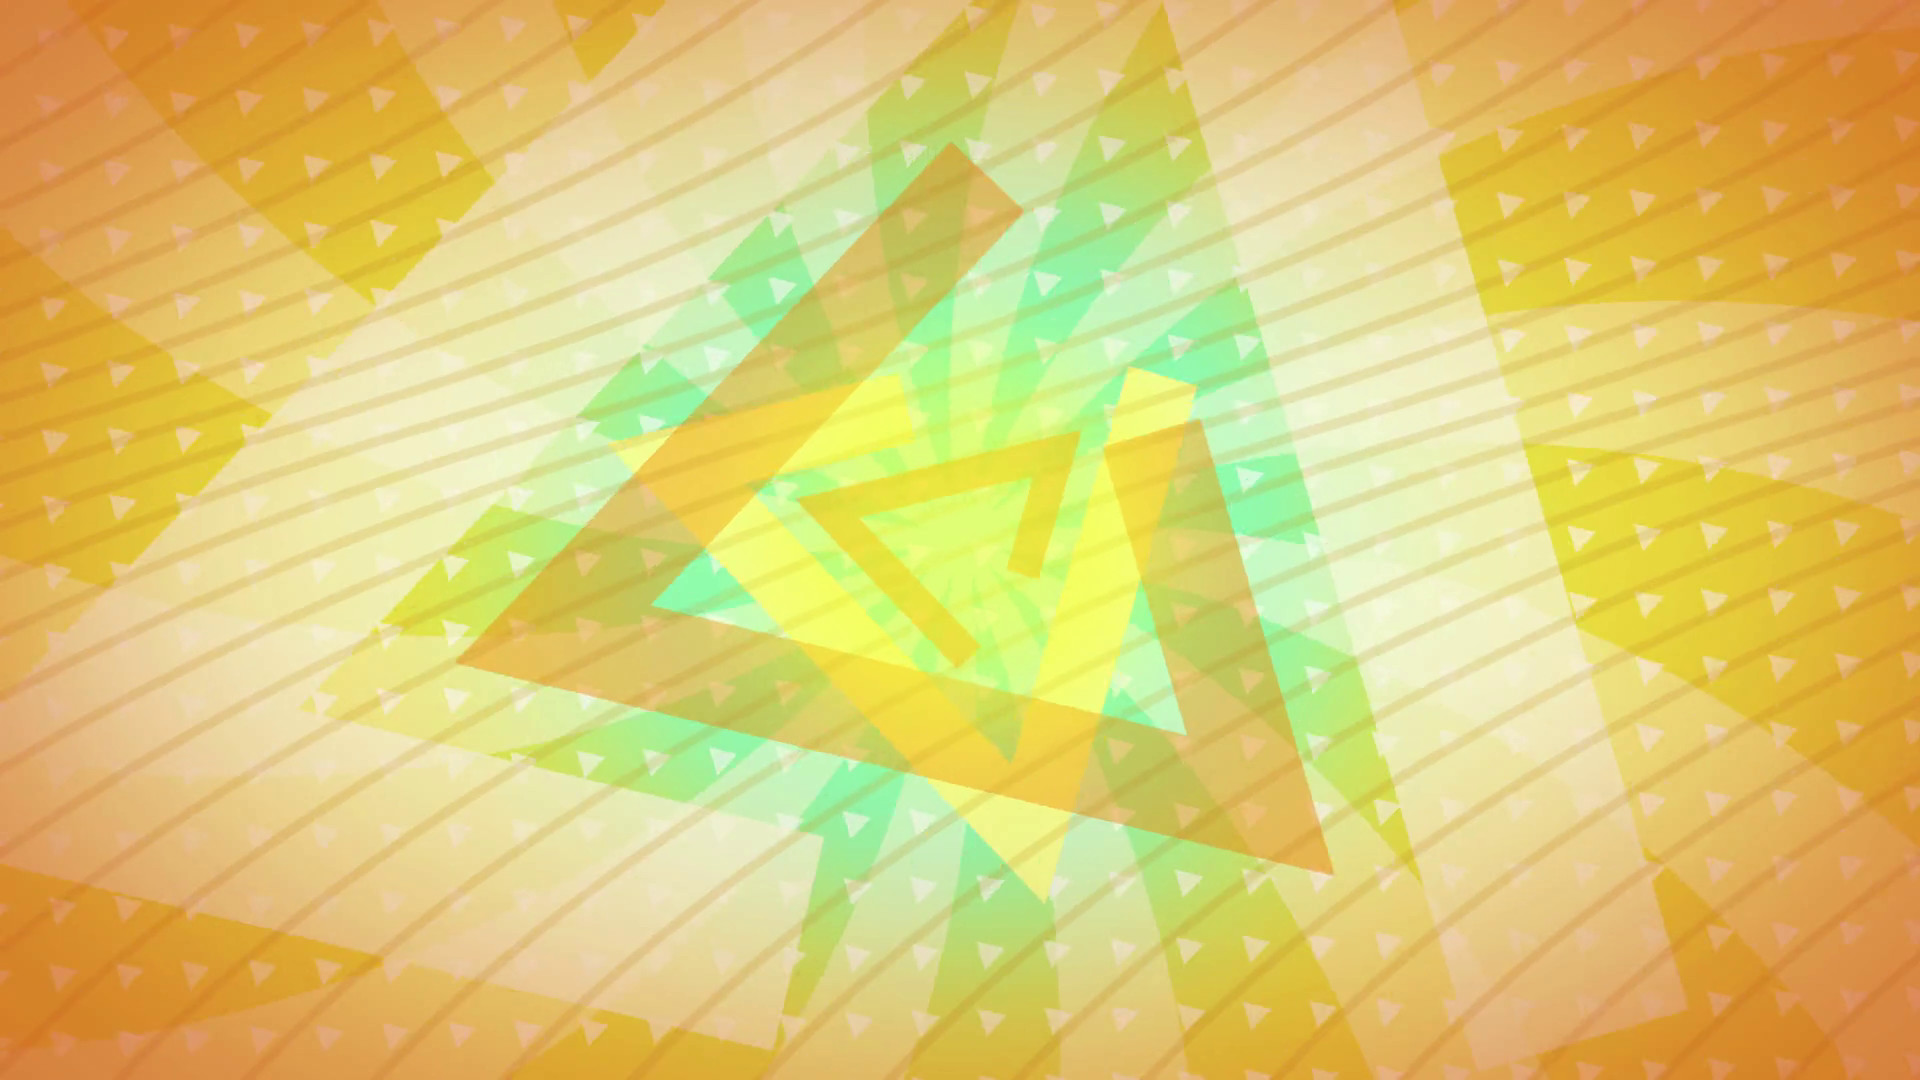 Subscription Library Yellow triangles Abstract Background Animation loop  for your logo or text. Technology Background. Futuristic